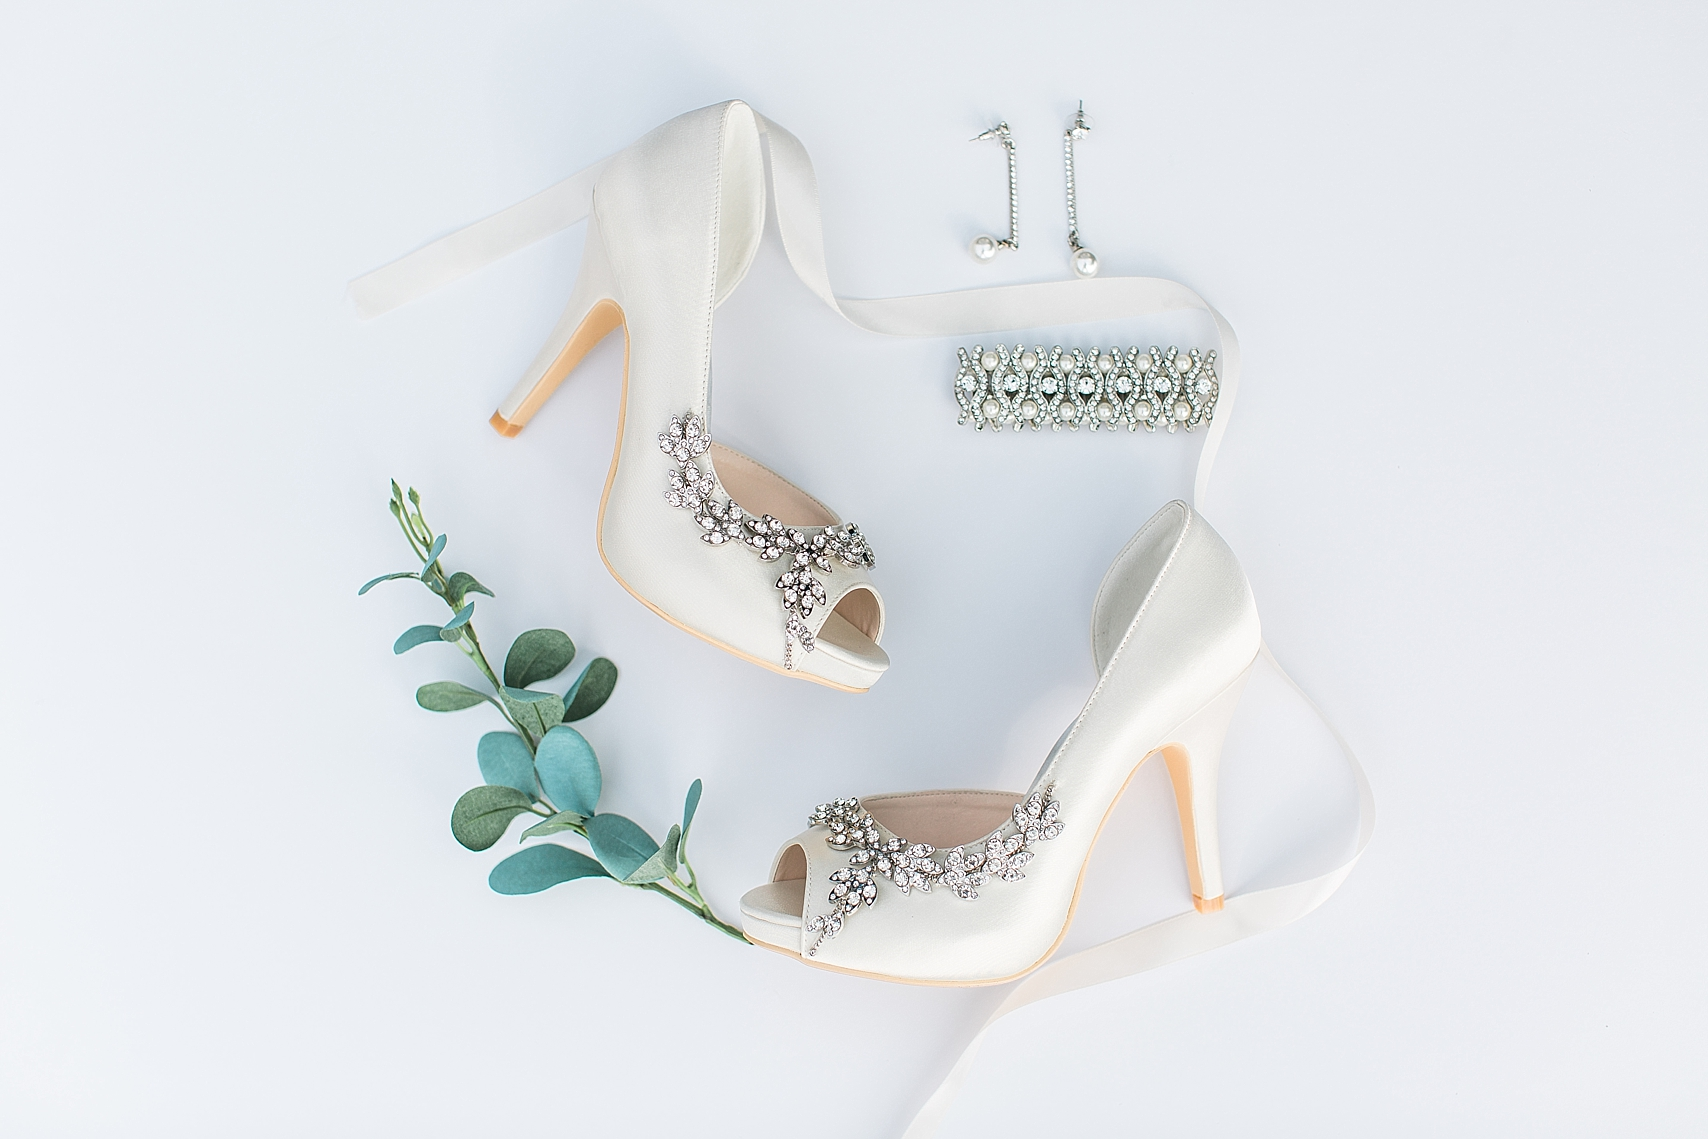 Bridal shoes and jewelry for wedding at the Chart House Summer Wedding Lakeville Minnesota Minneapolis Wedding Photographer Mallory Kiesow